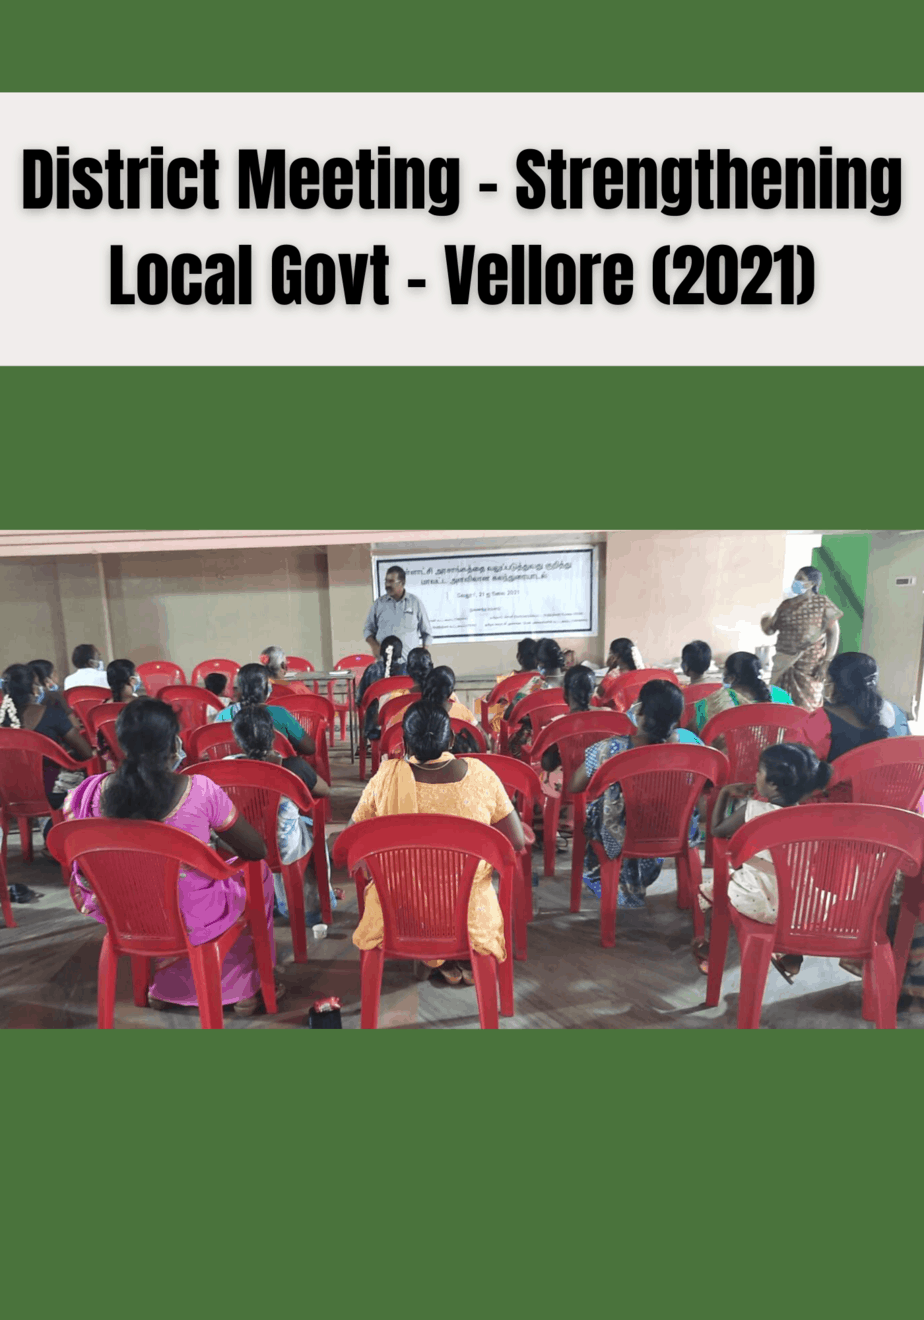 Strengthening local government 2021 – Vellore